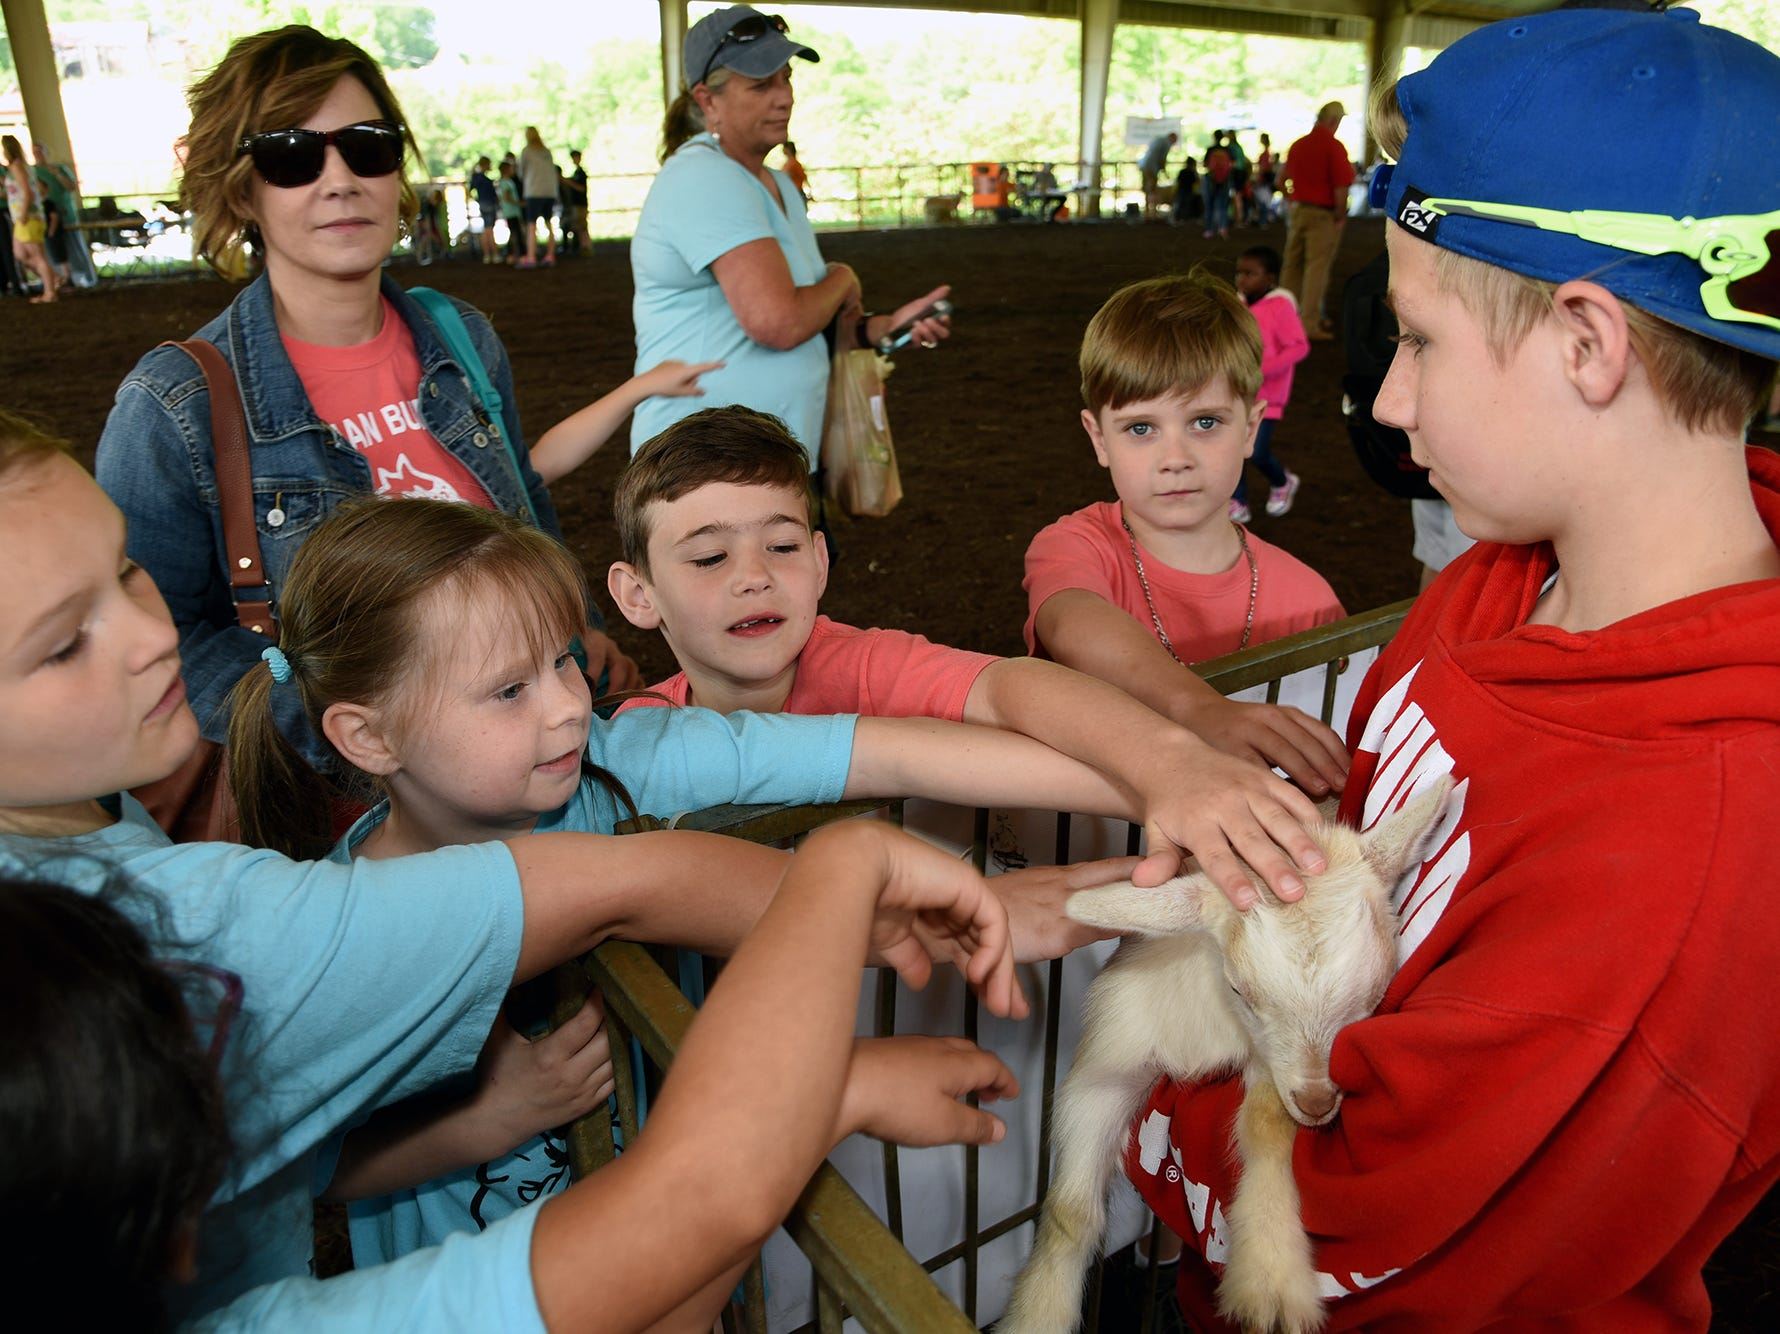 Brayden Eliott, right, holds a pygmy goat for Knox County students to pet. Over 600 Knox County School children attended the annual Knox County Farm Bureau Ag in the Classroom Farm Day at Chilhowee Park Tuesday, May 7, 2019.